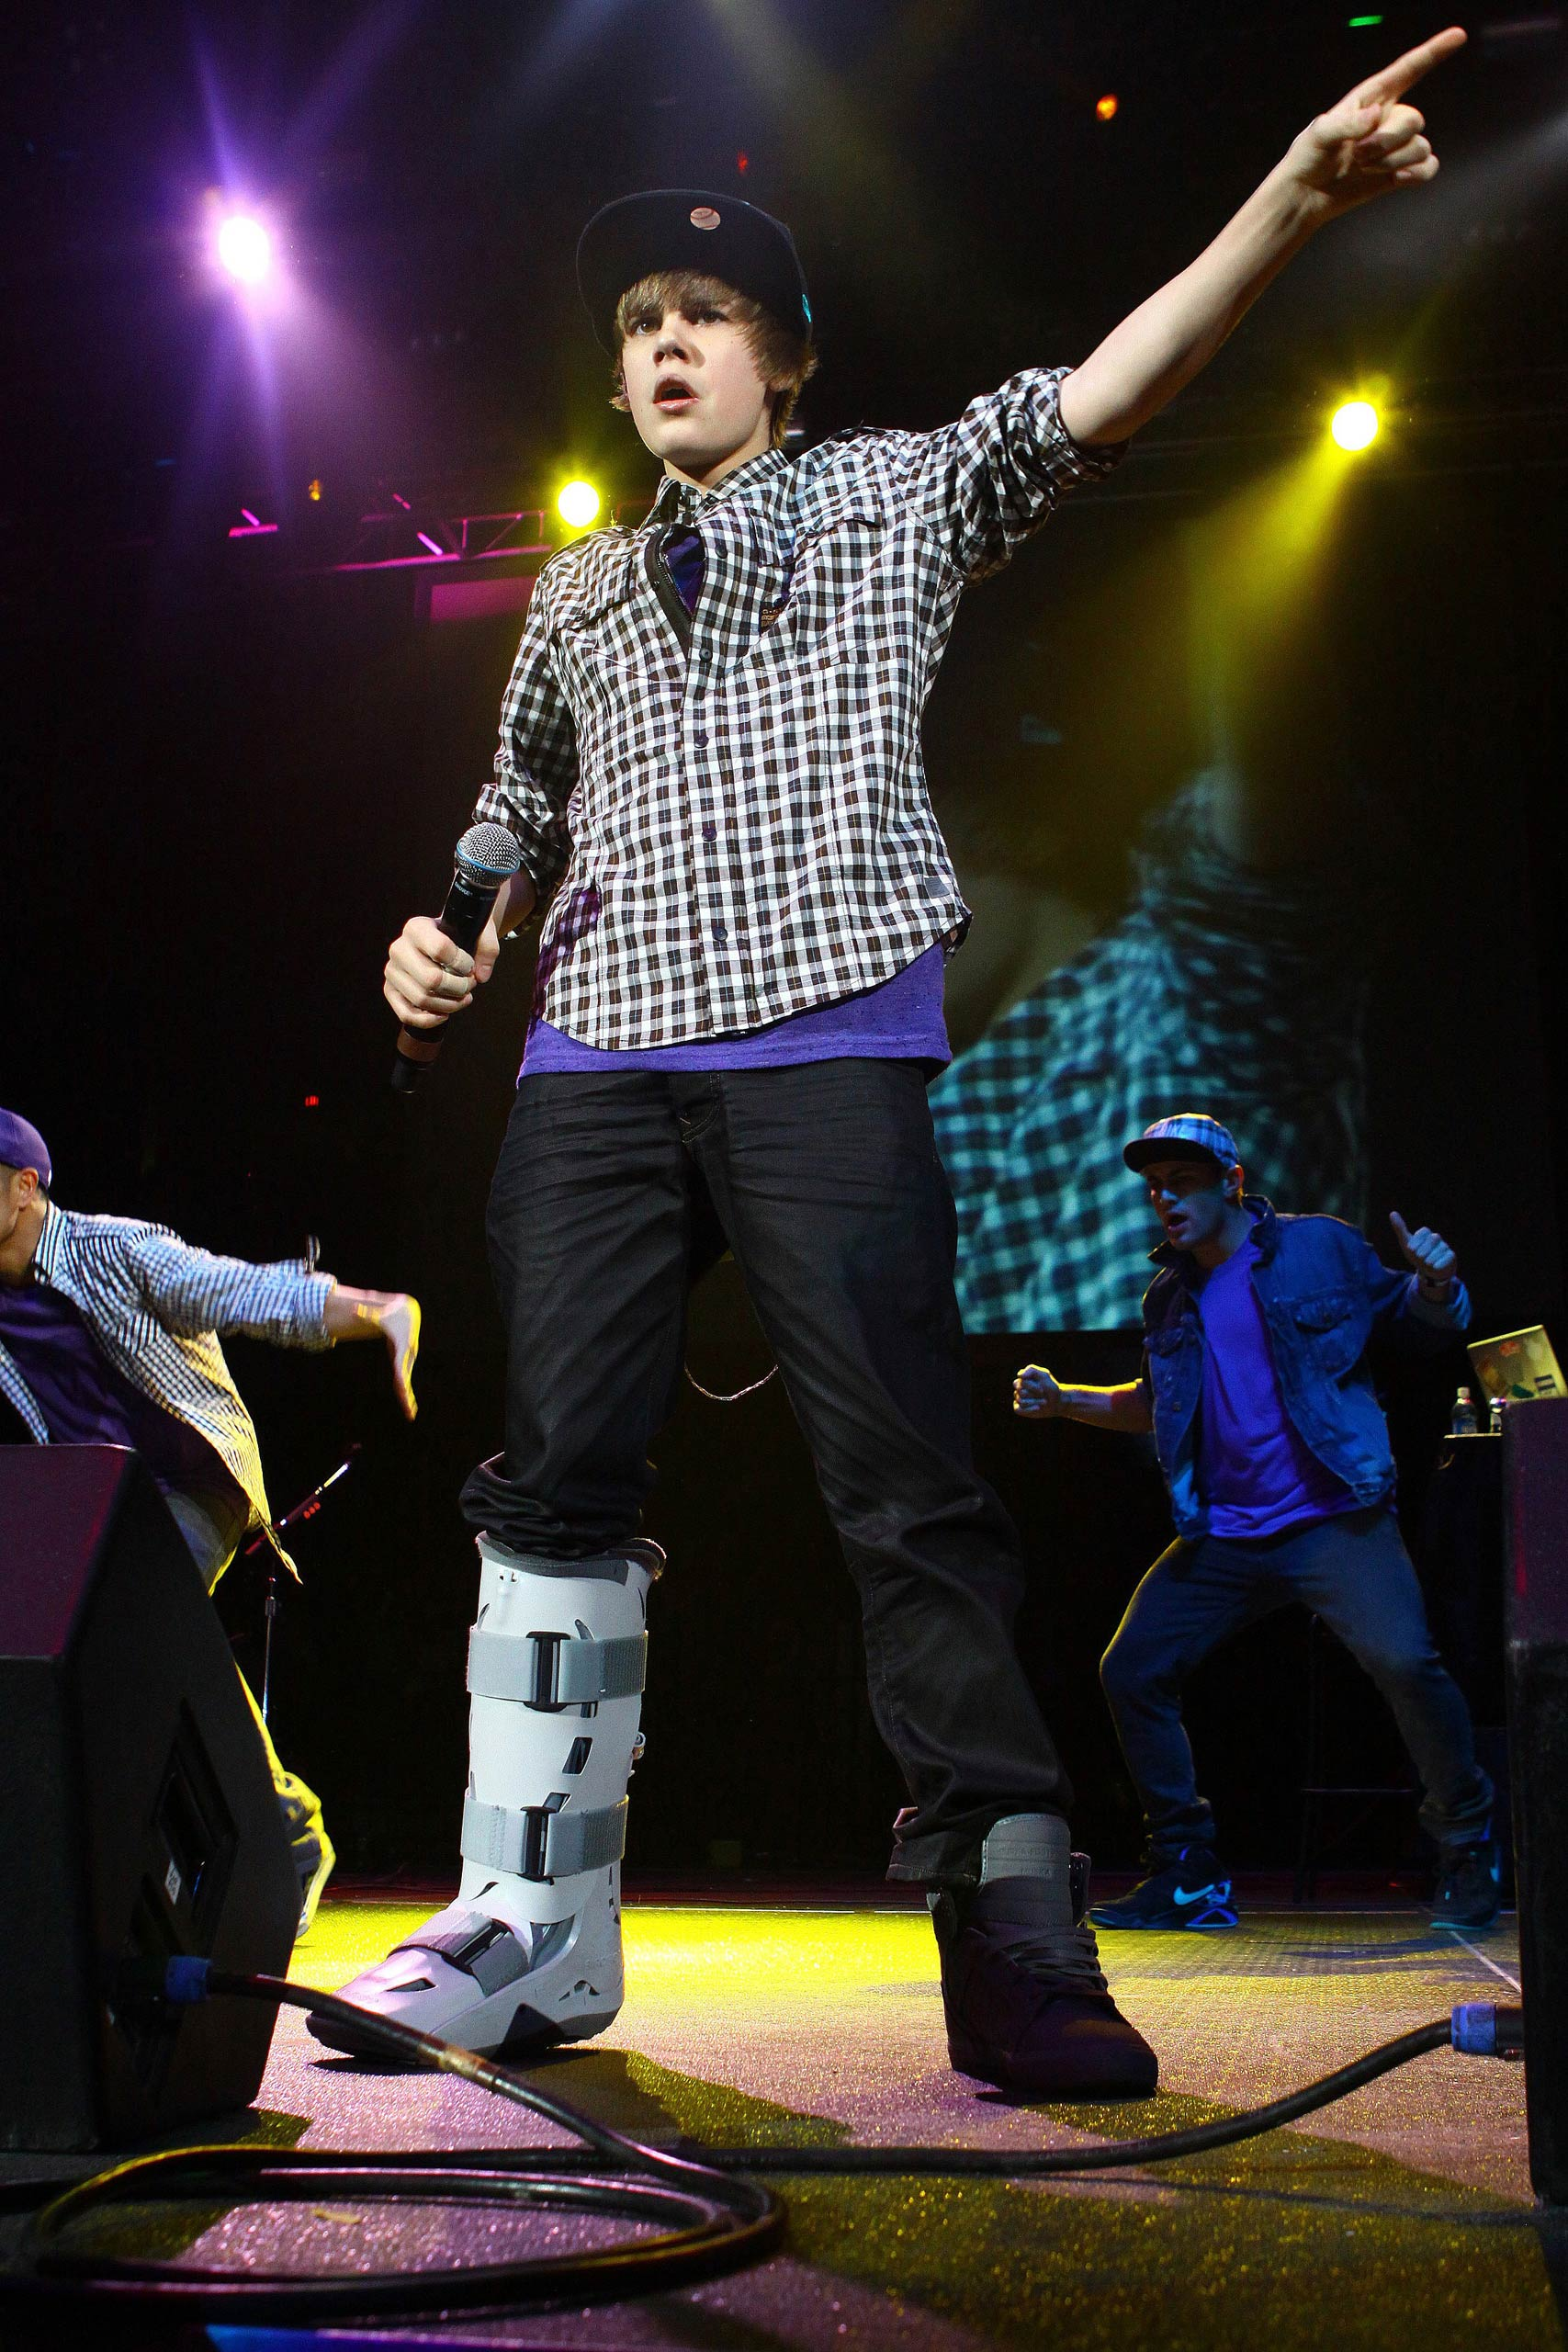 Justin Bieber performs at the Allstate Arena in Rosemont, Ill. in 2009.